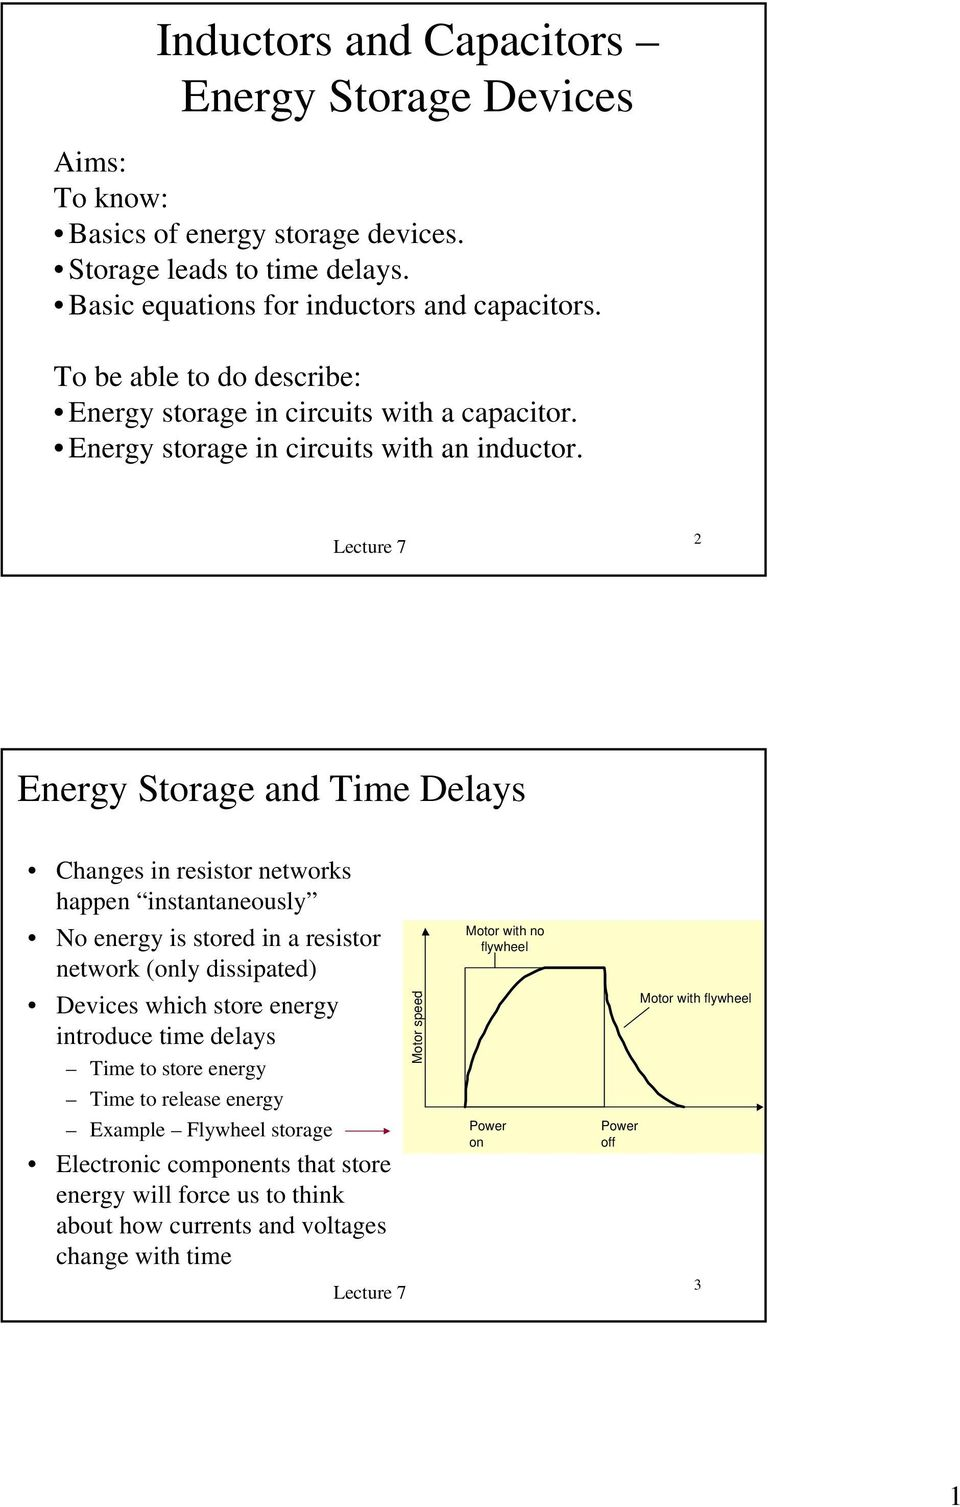 Inductors And Capacitors Energy Storage Devices Pdf Inductor Is Proportional To The Inductance This Circuit Reads Lecture 8 An Time Delays Changes In Resistor Networks Happen Instantaneously No